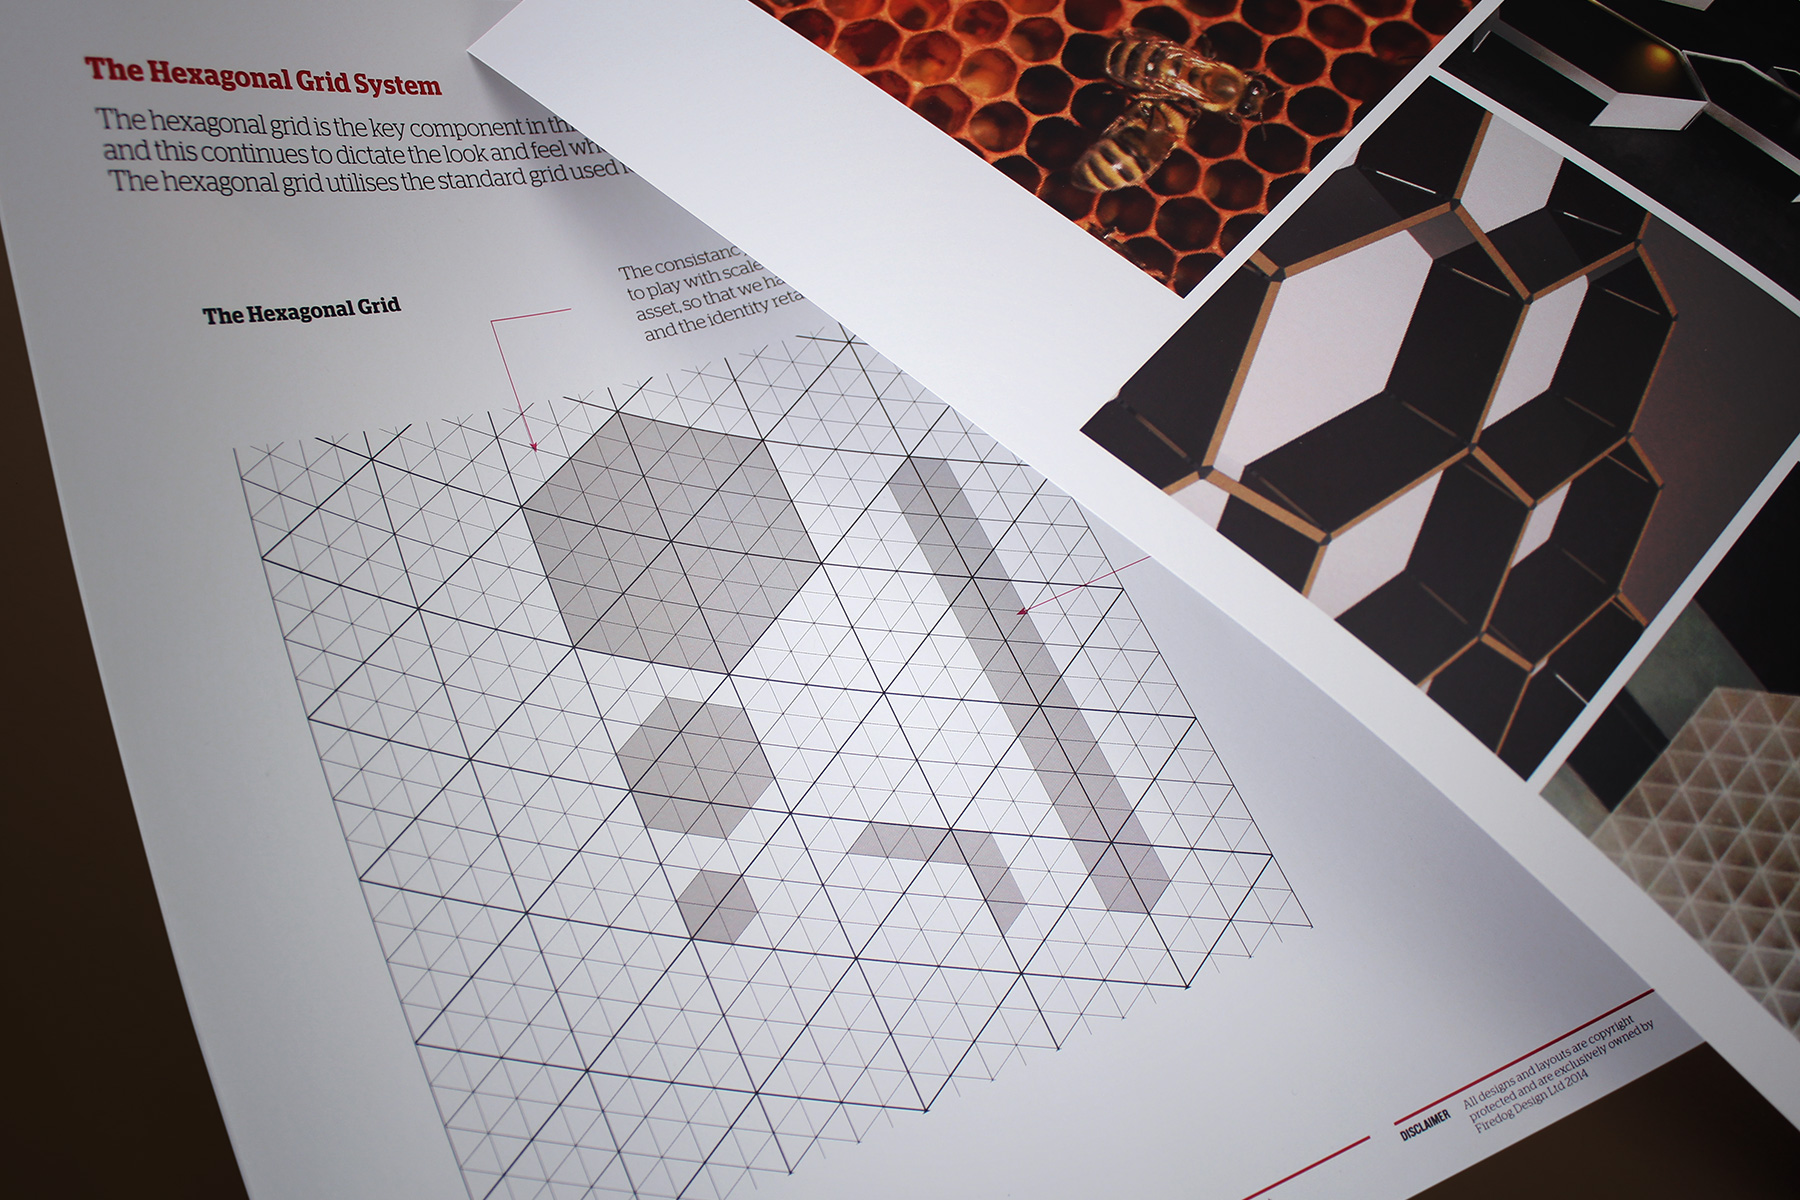 We created a flexible hexagonal grid which constrained the identity to particular angles, forms and functions.